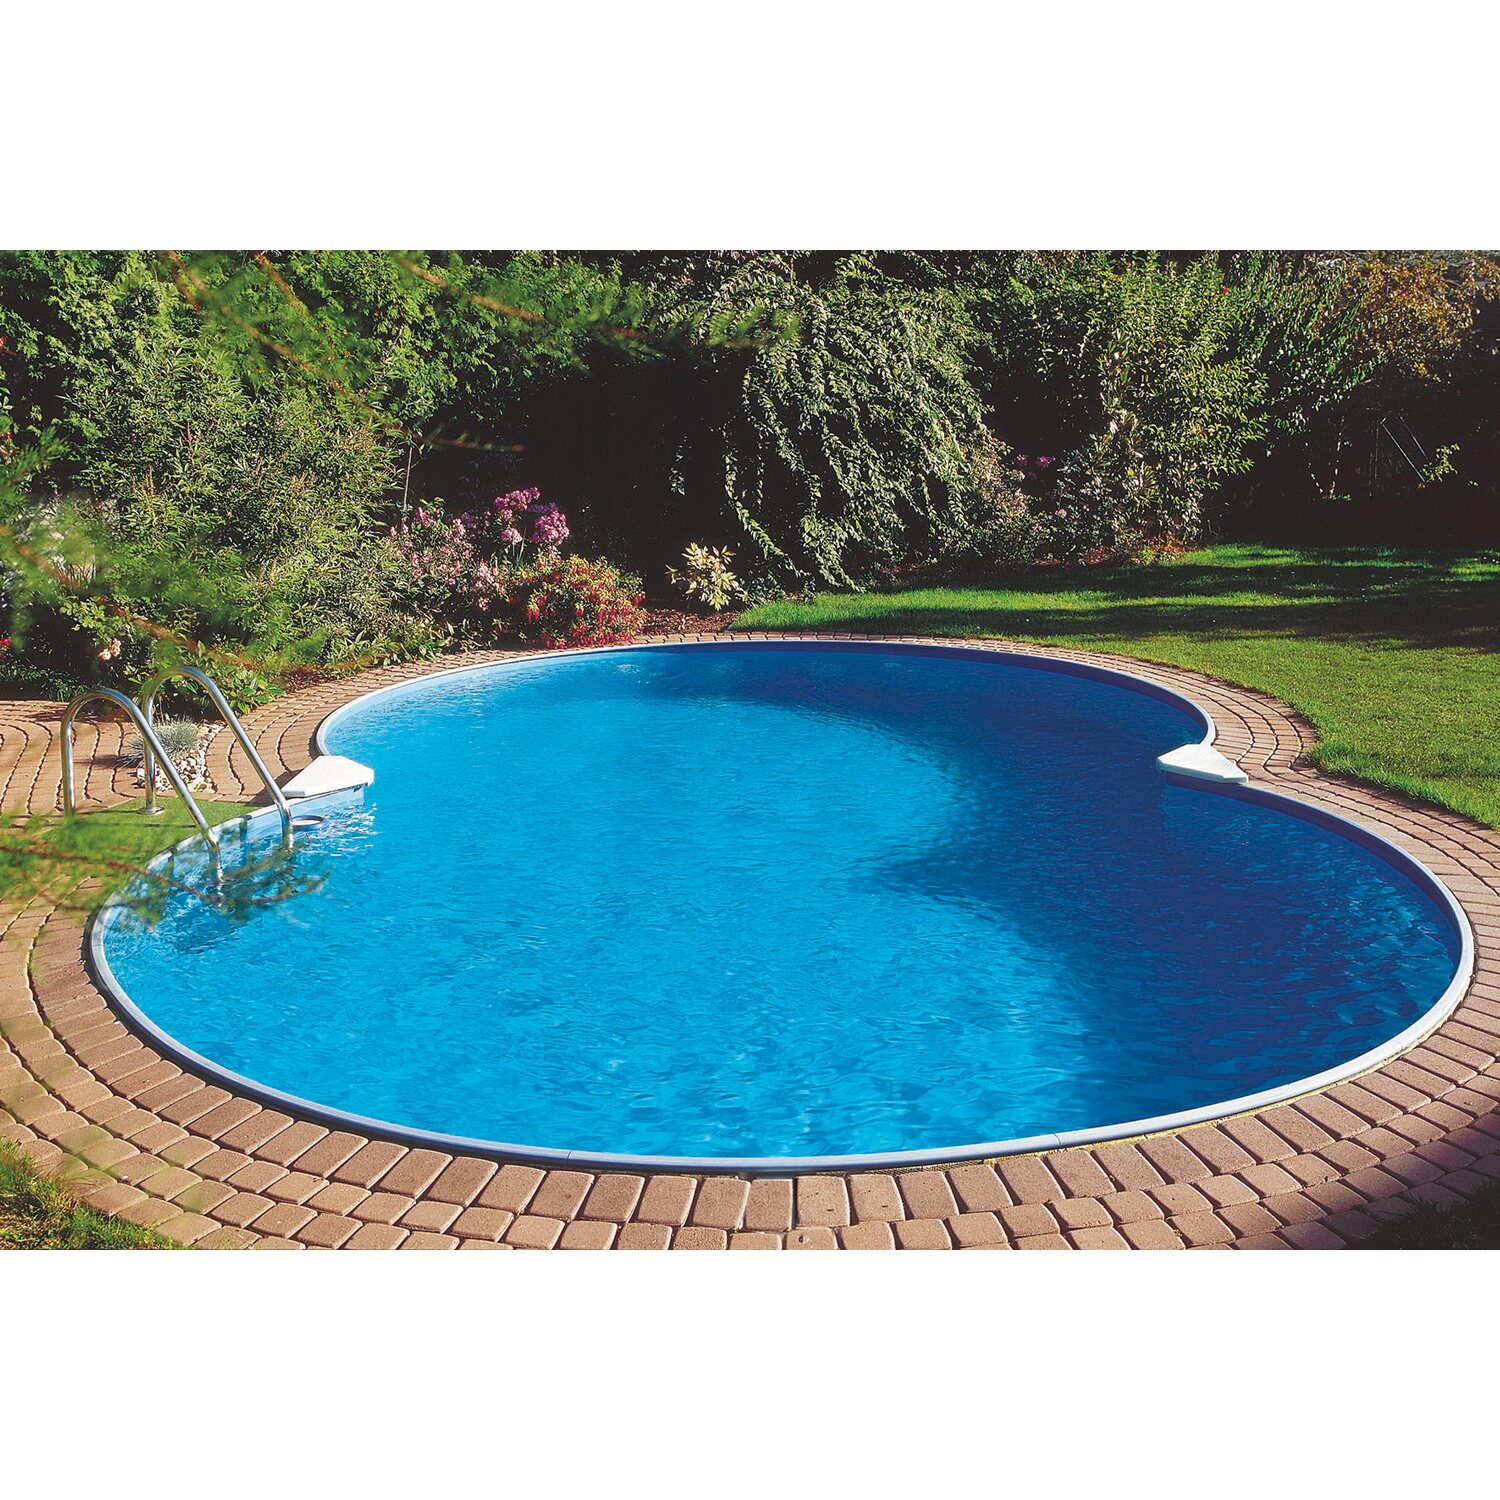 Stahlwand pool set cannes einbaubecken achtform 625 cm x for Obi pool set